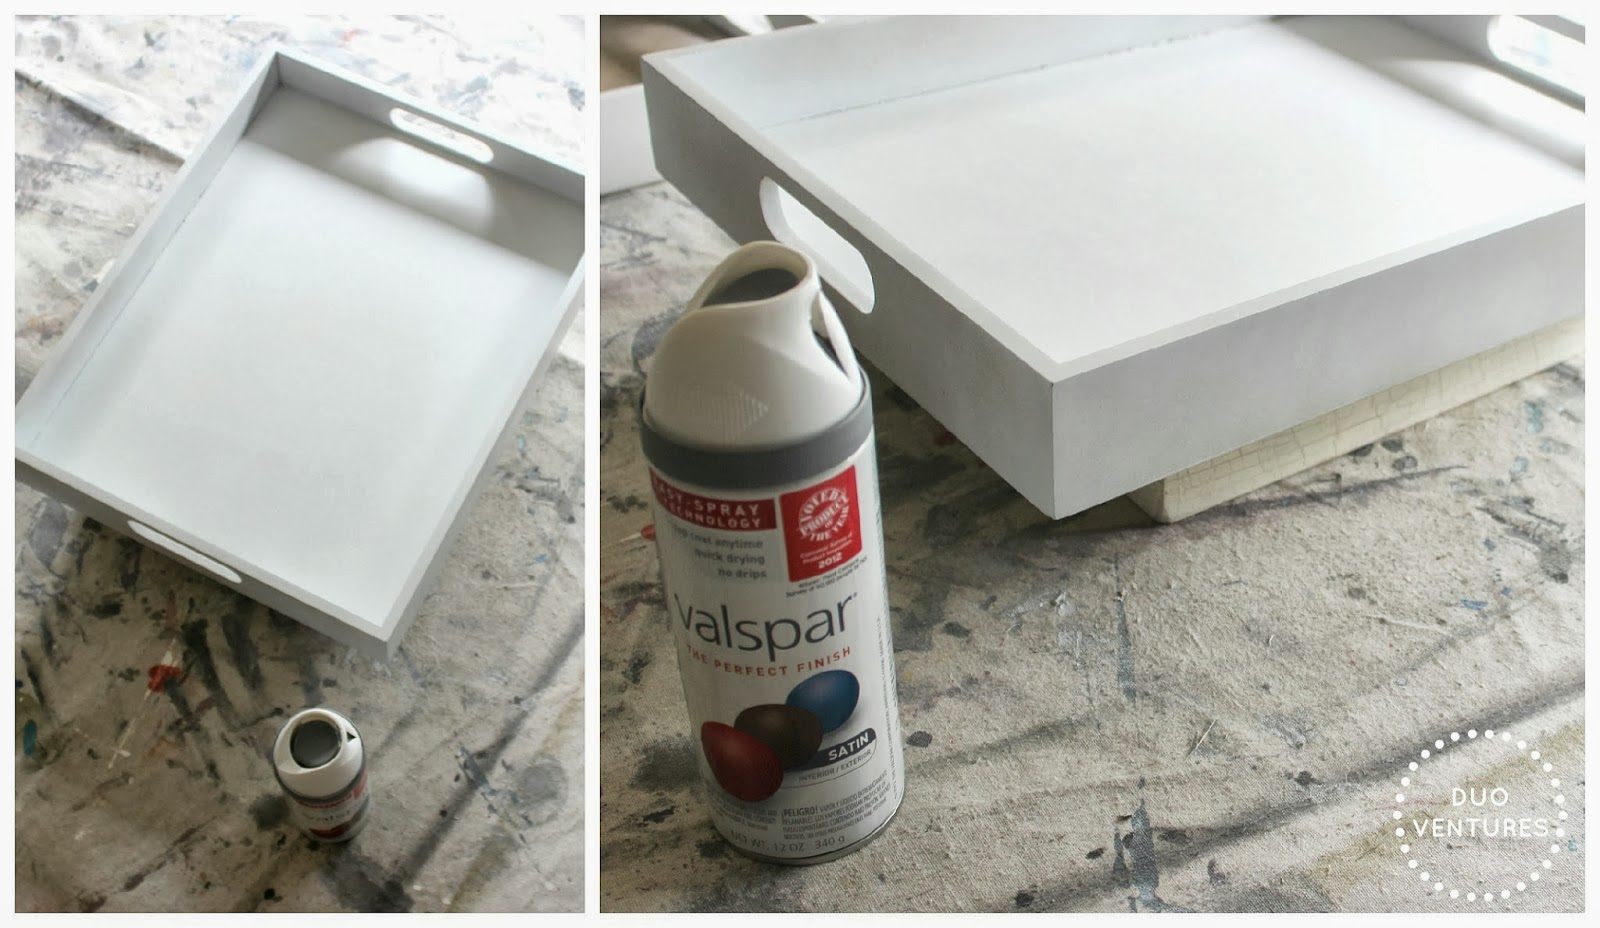 diy lacquer furniture. As I Let The Tray Dry, Started Thinking About What Would Do To Customize It. Diy Lacquer Furniture T